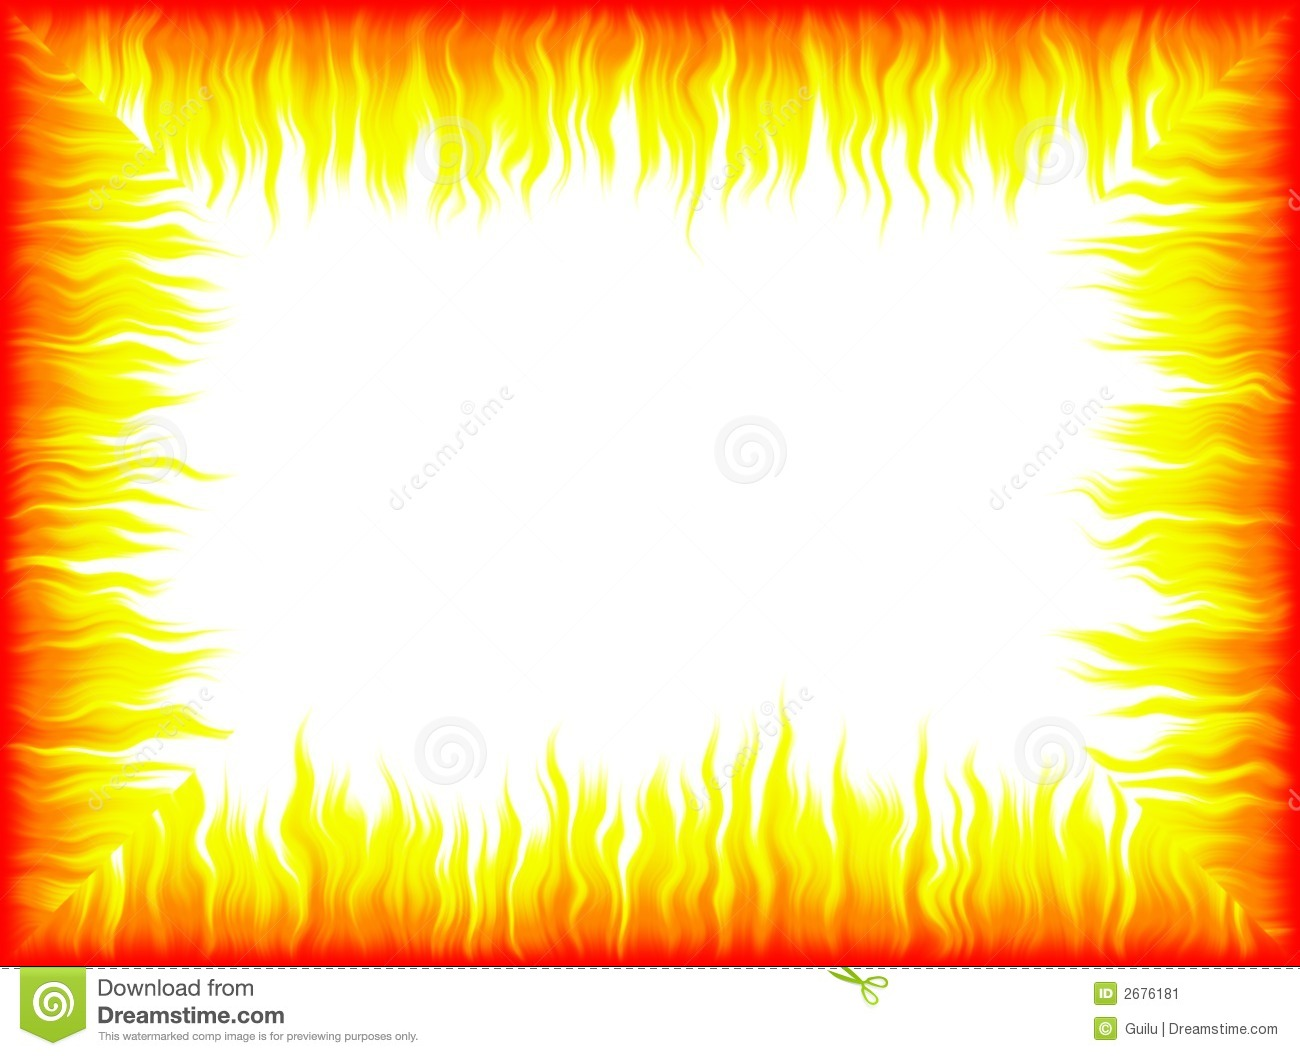 Fire border clipart free jpg freeuse download Fire Border Clipart   Free download best Fire Border Clipart on ... jpg freeuse download